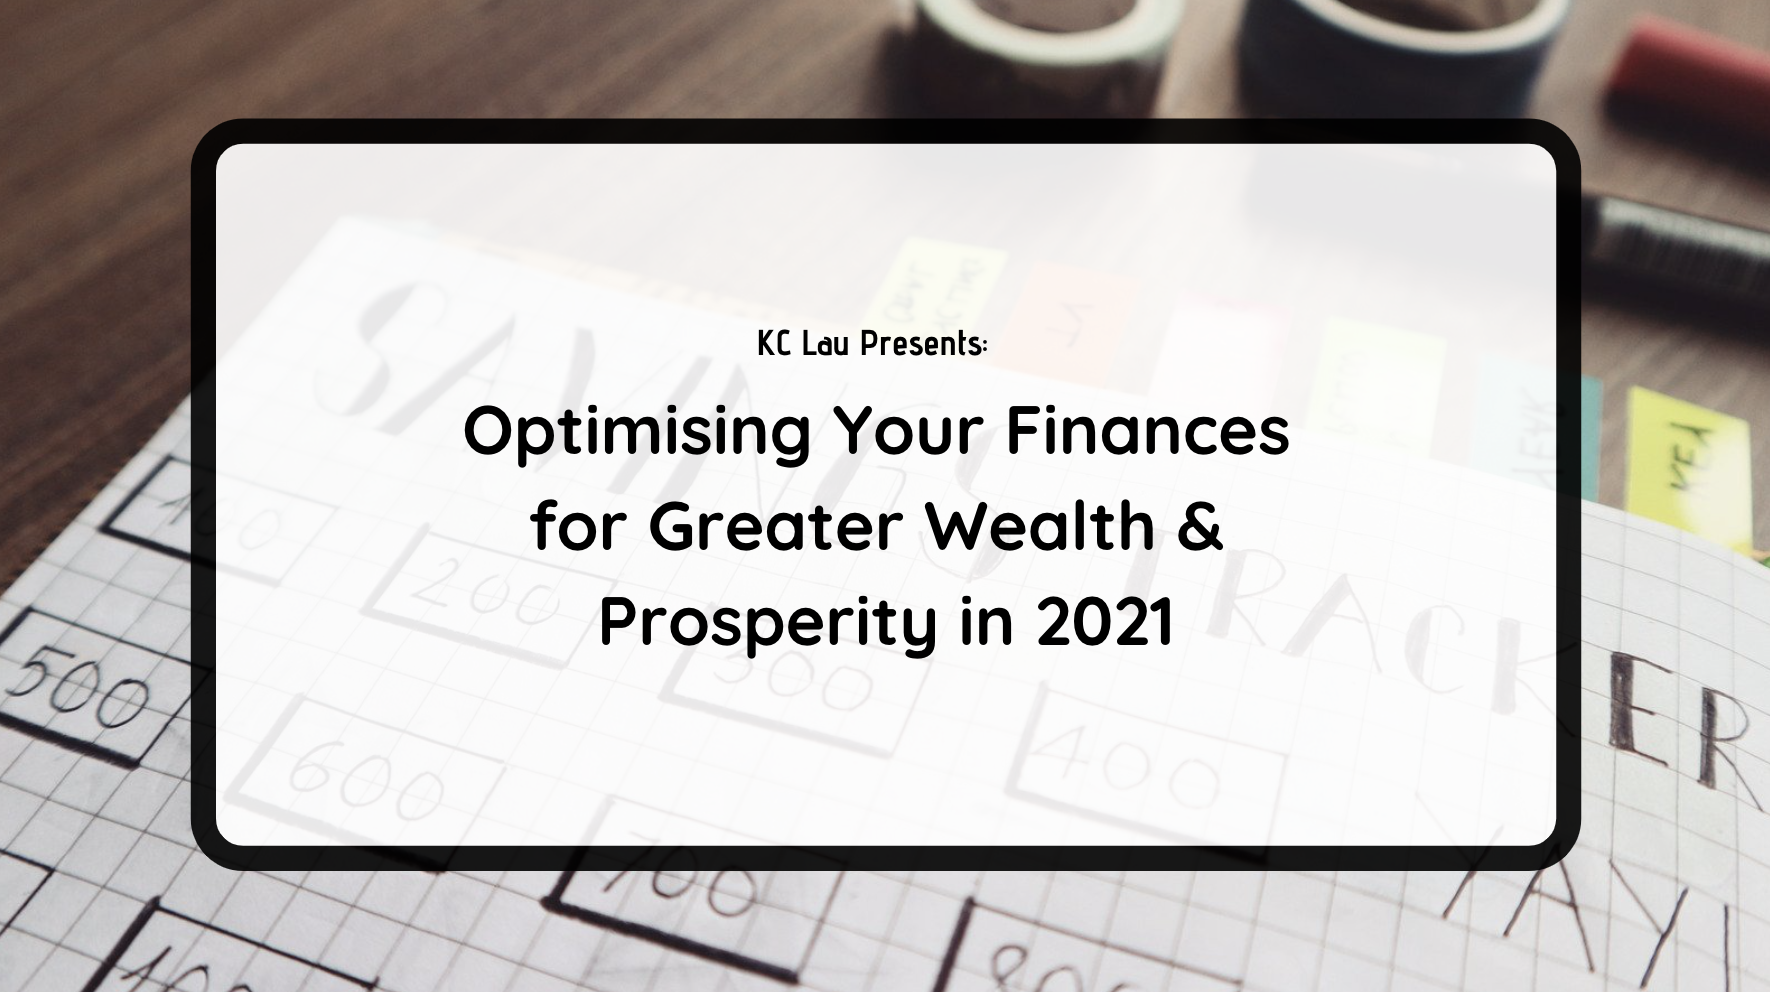 Optimising Your Finances for Greater Wealth & Prosperity in 2021